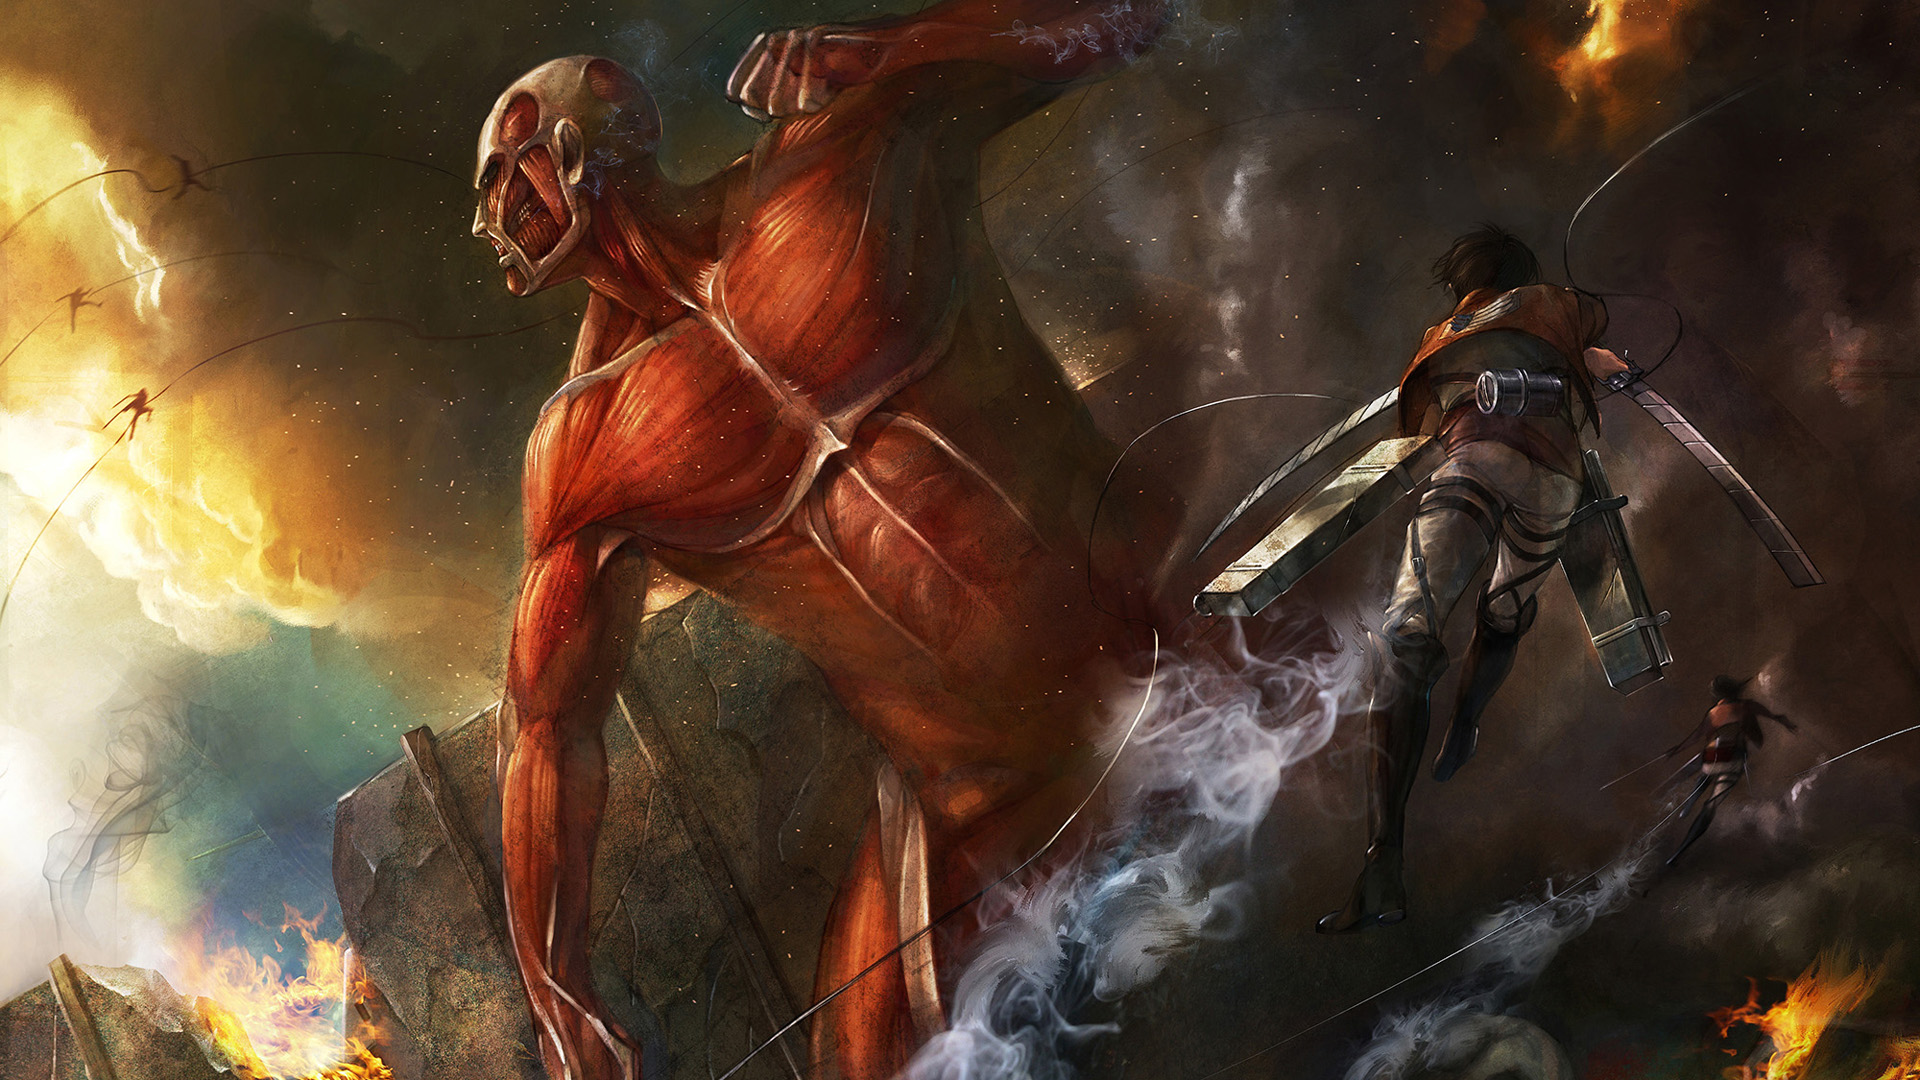 49 Attack On Titan Wallpapers On Wallpapersafari